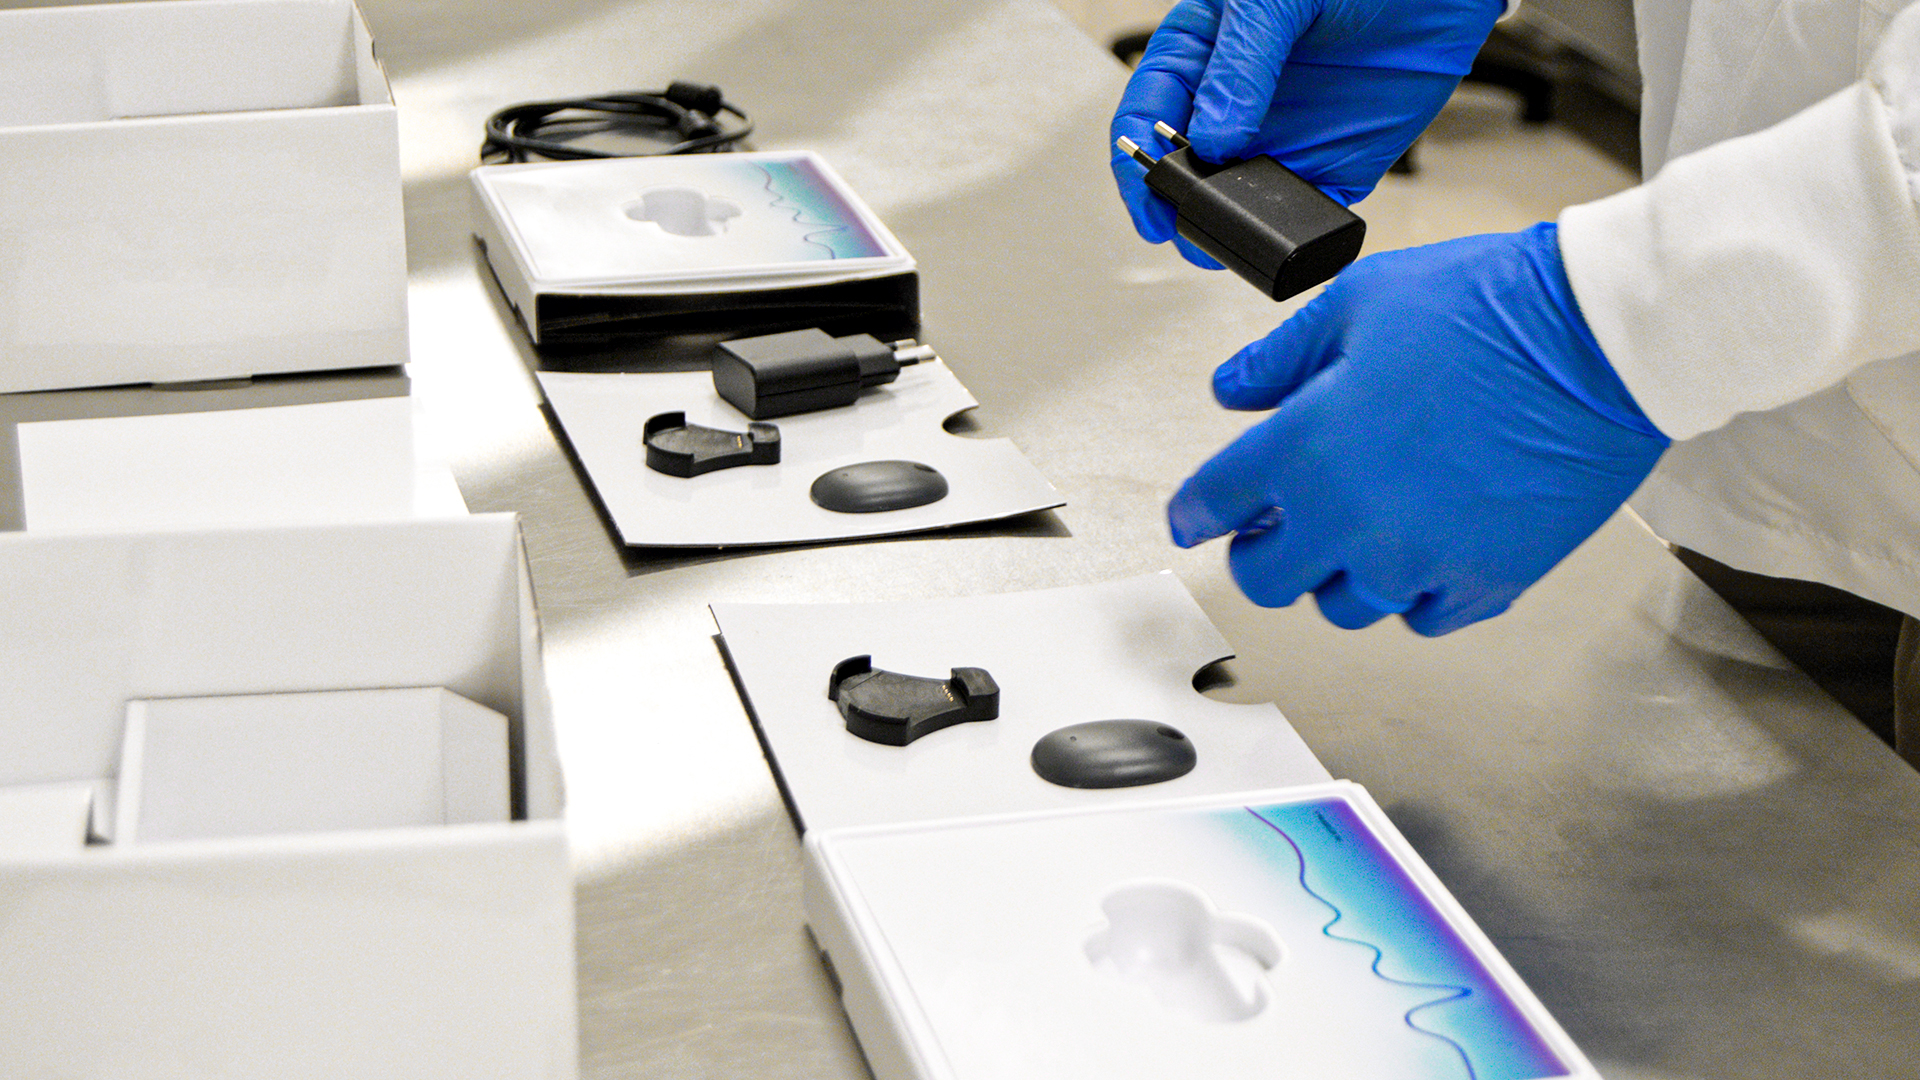 Medical devices being kitted for packaging.